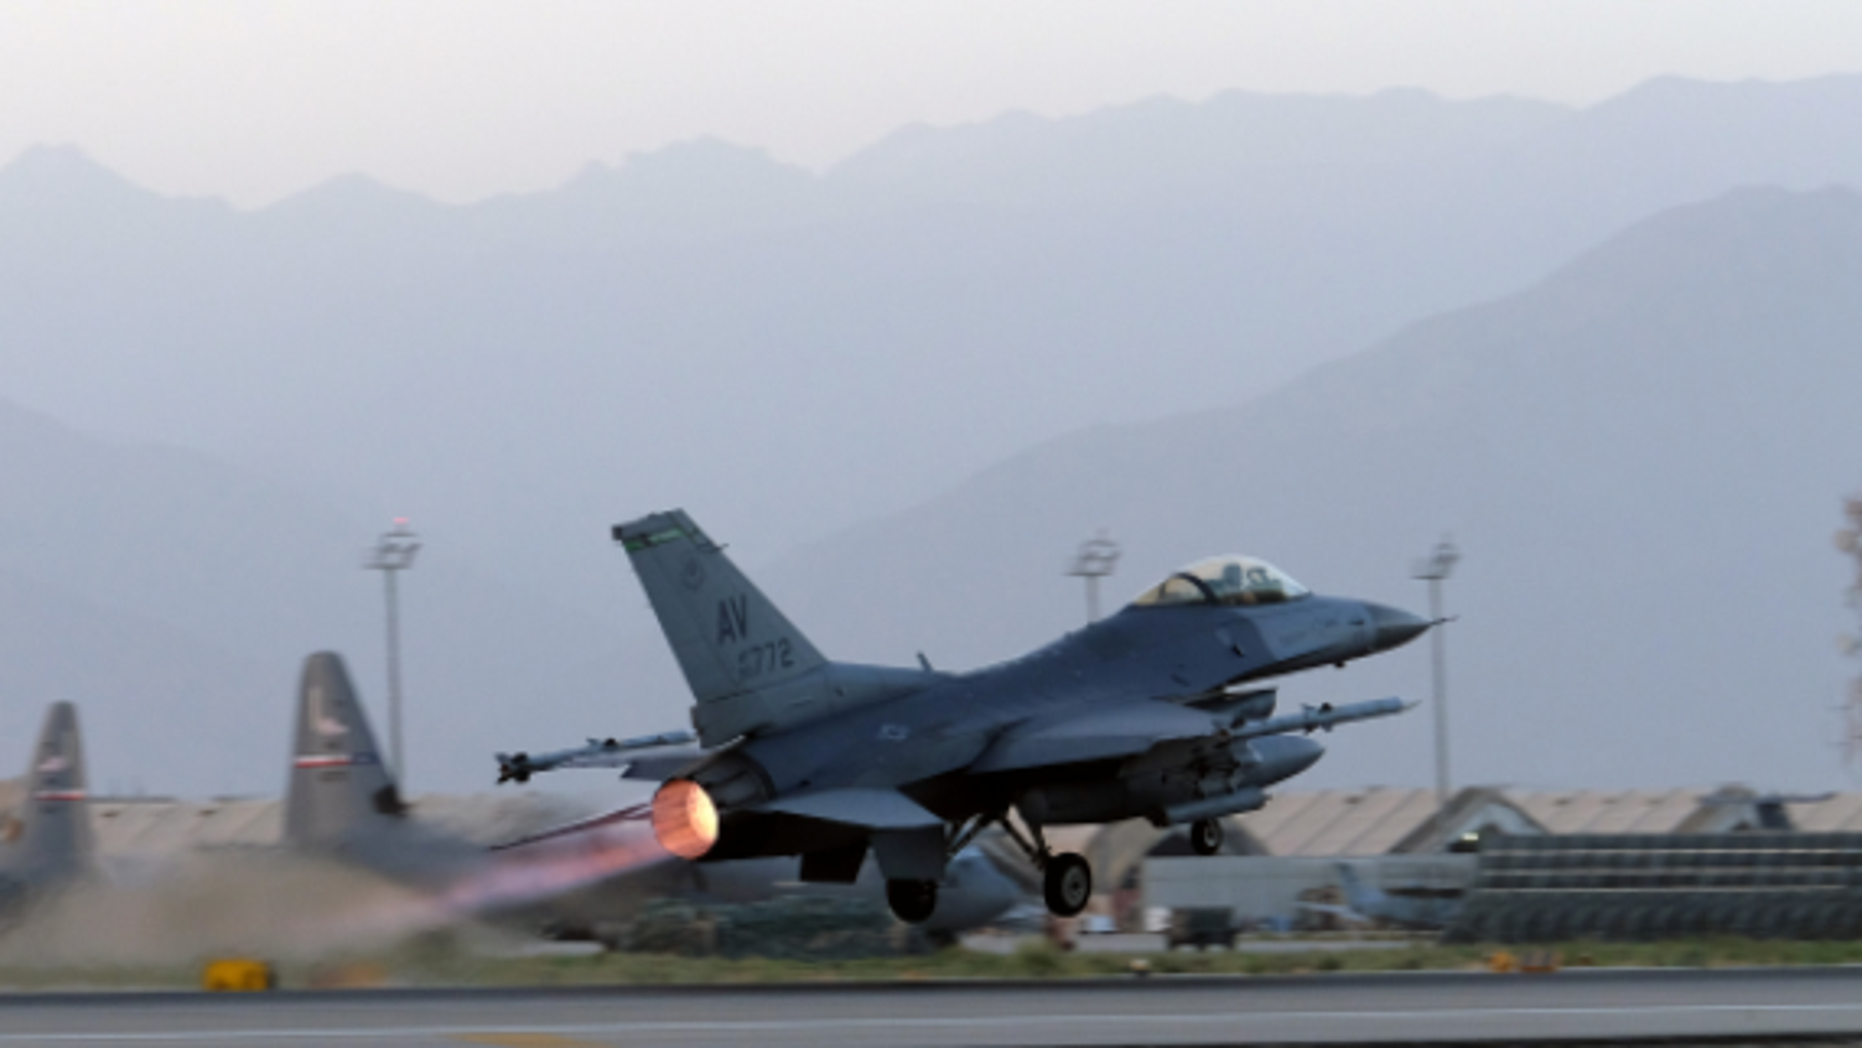 A F-16 Fighting Falcon crashed in Arizona Tuesday, according to the U.S. Air Force.